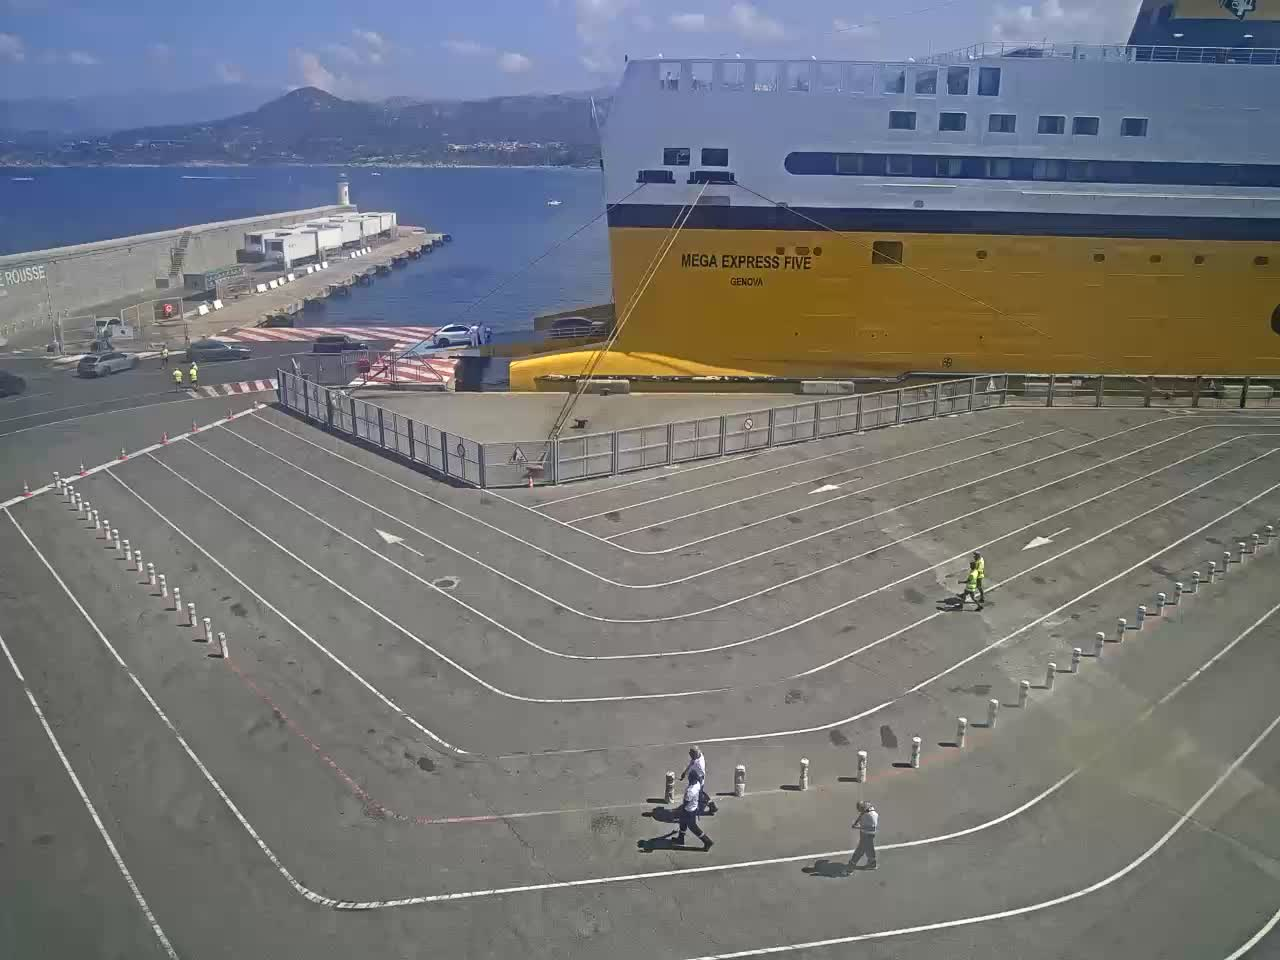 Webcam Toulon Webcam L'ile Rousse - Corse - France - Vision-environnement